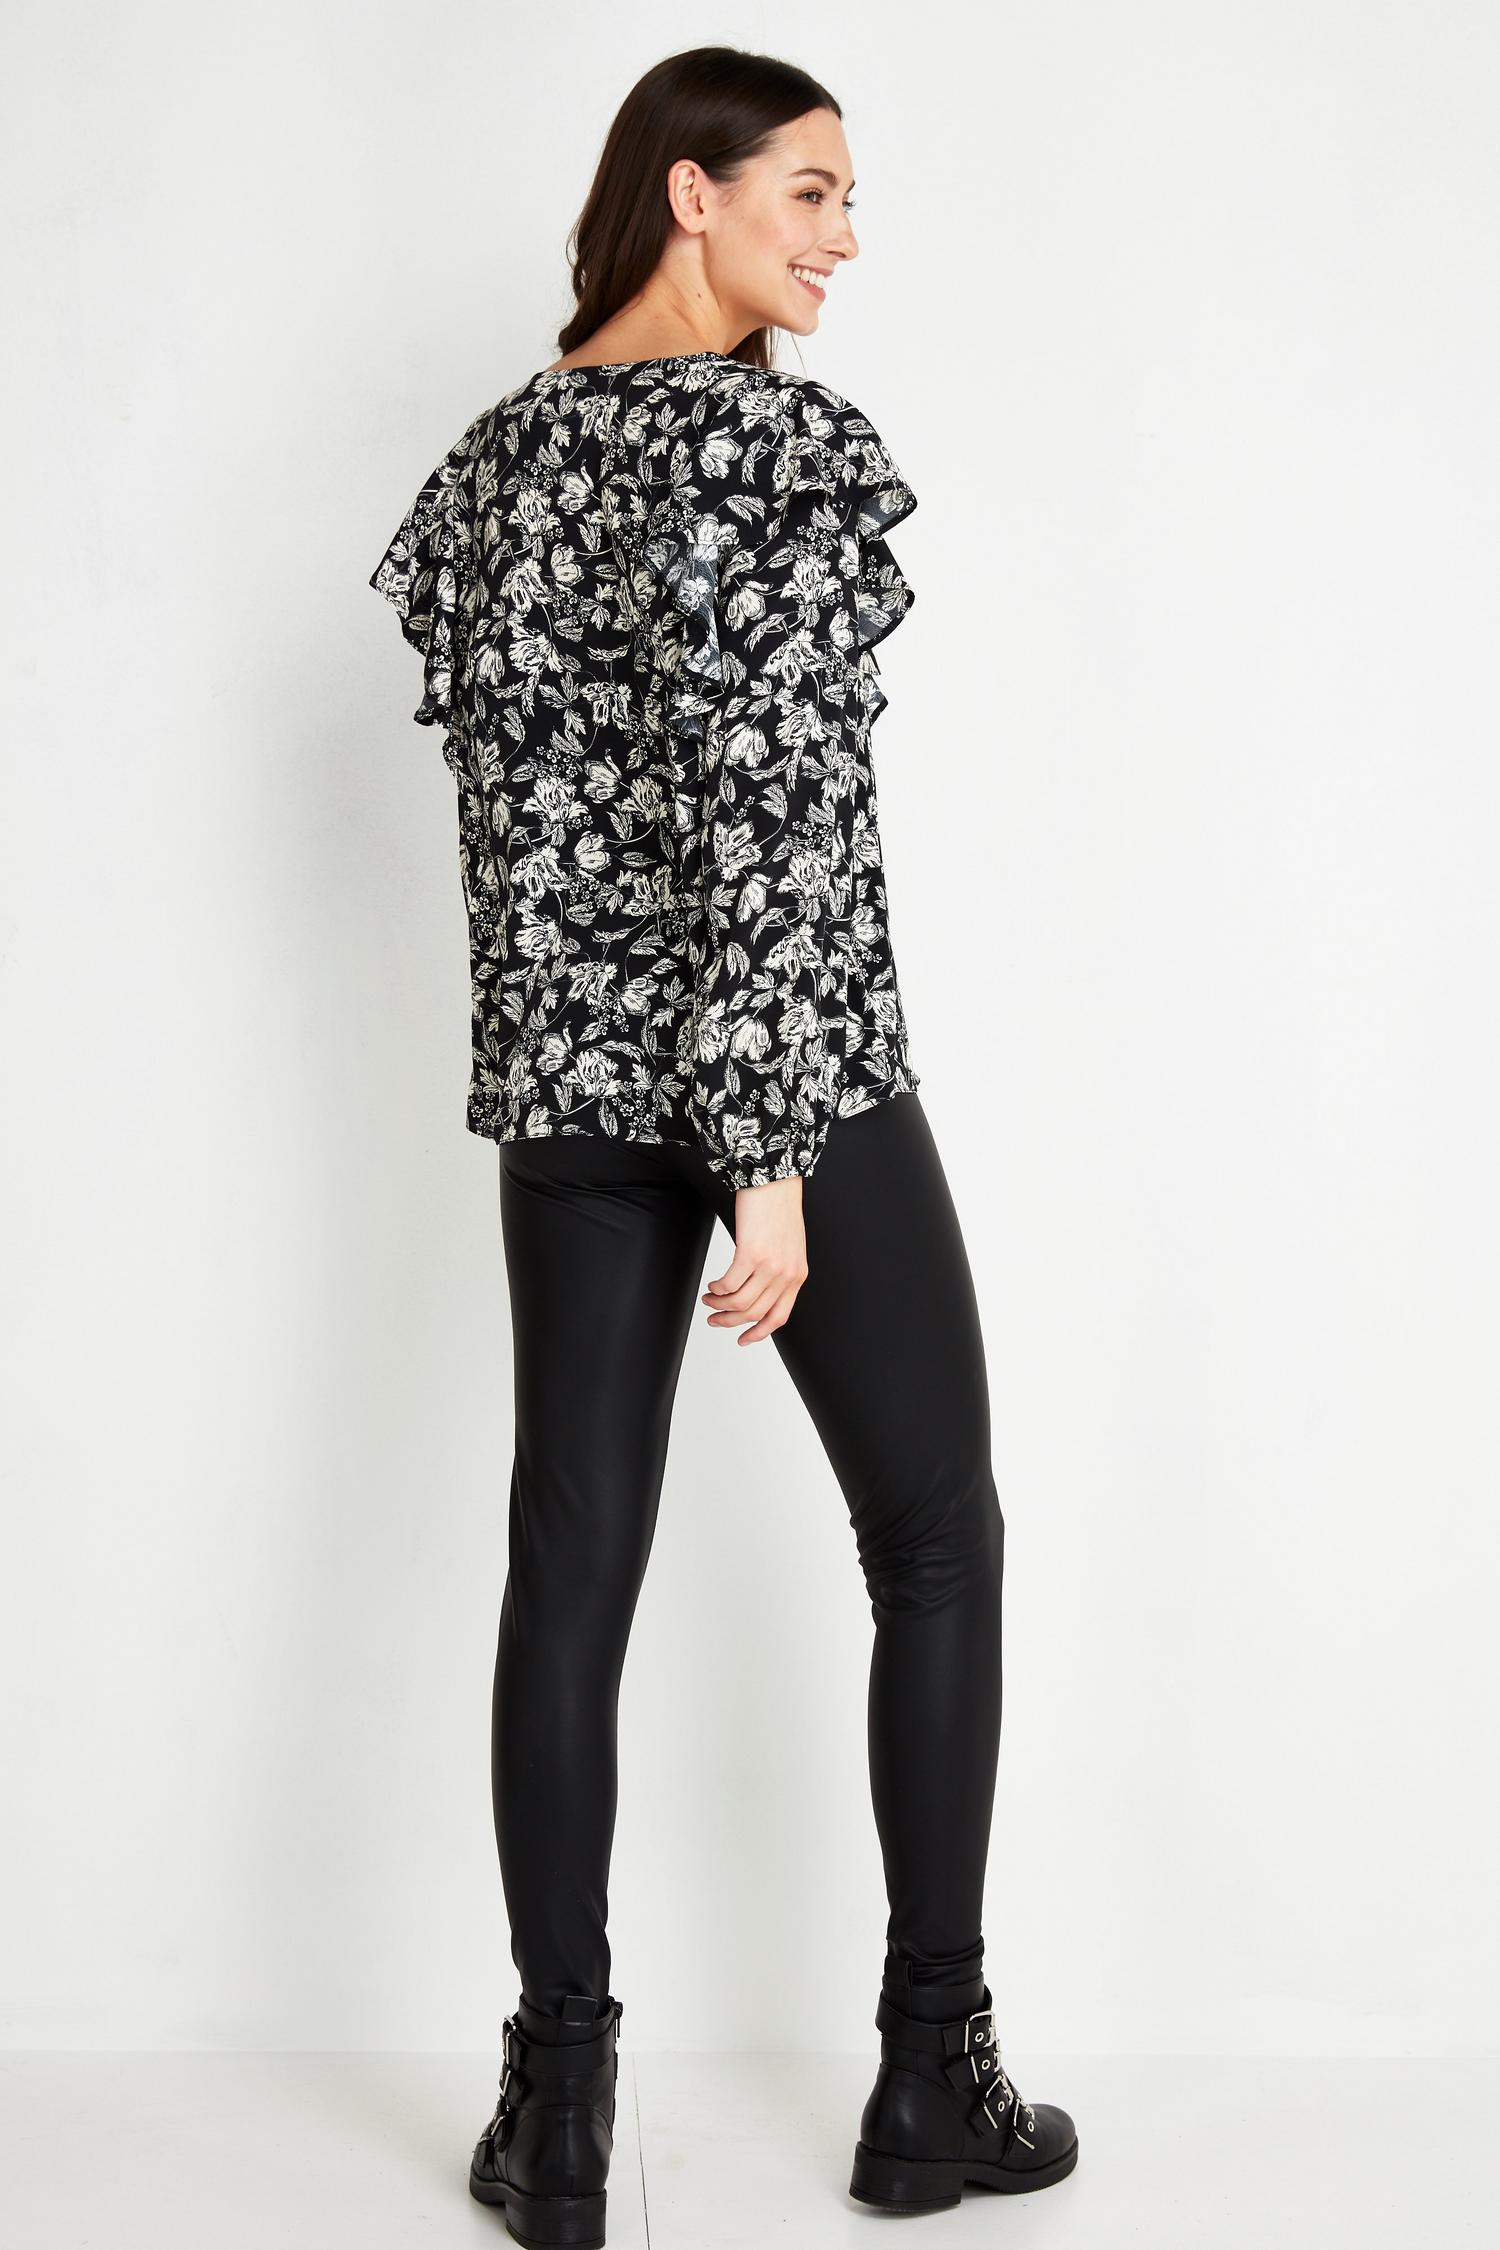 585 Monochrome Floral Print Ruffle Top image number 2